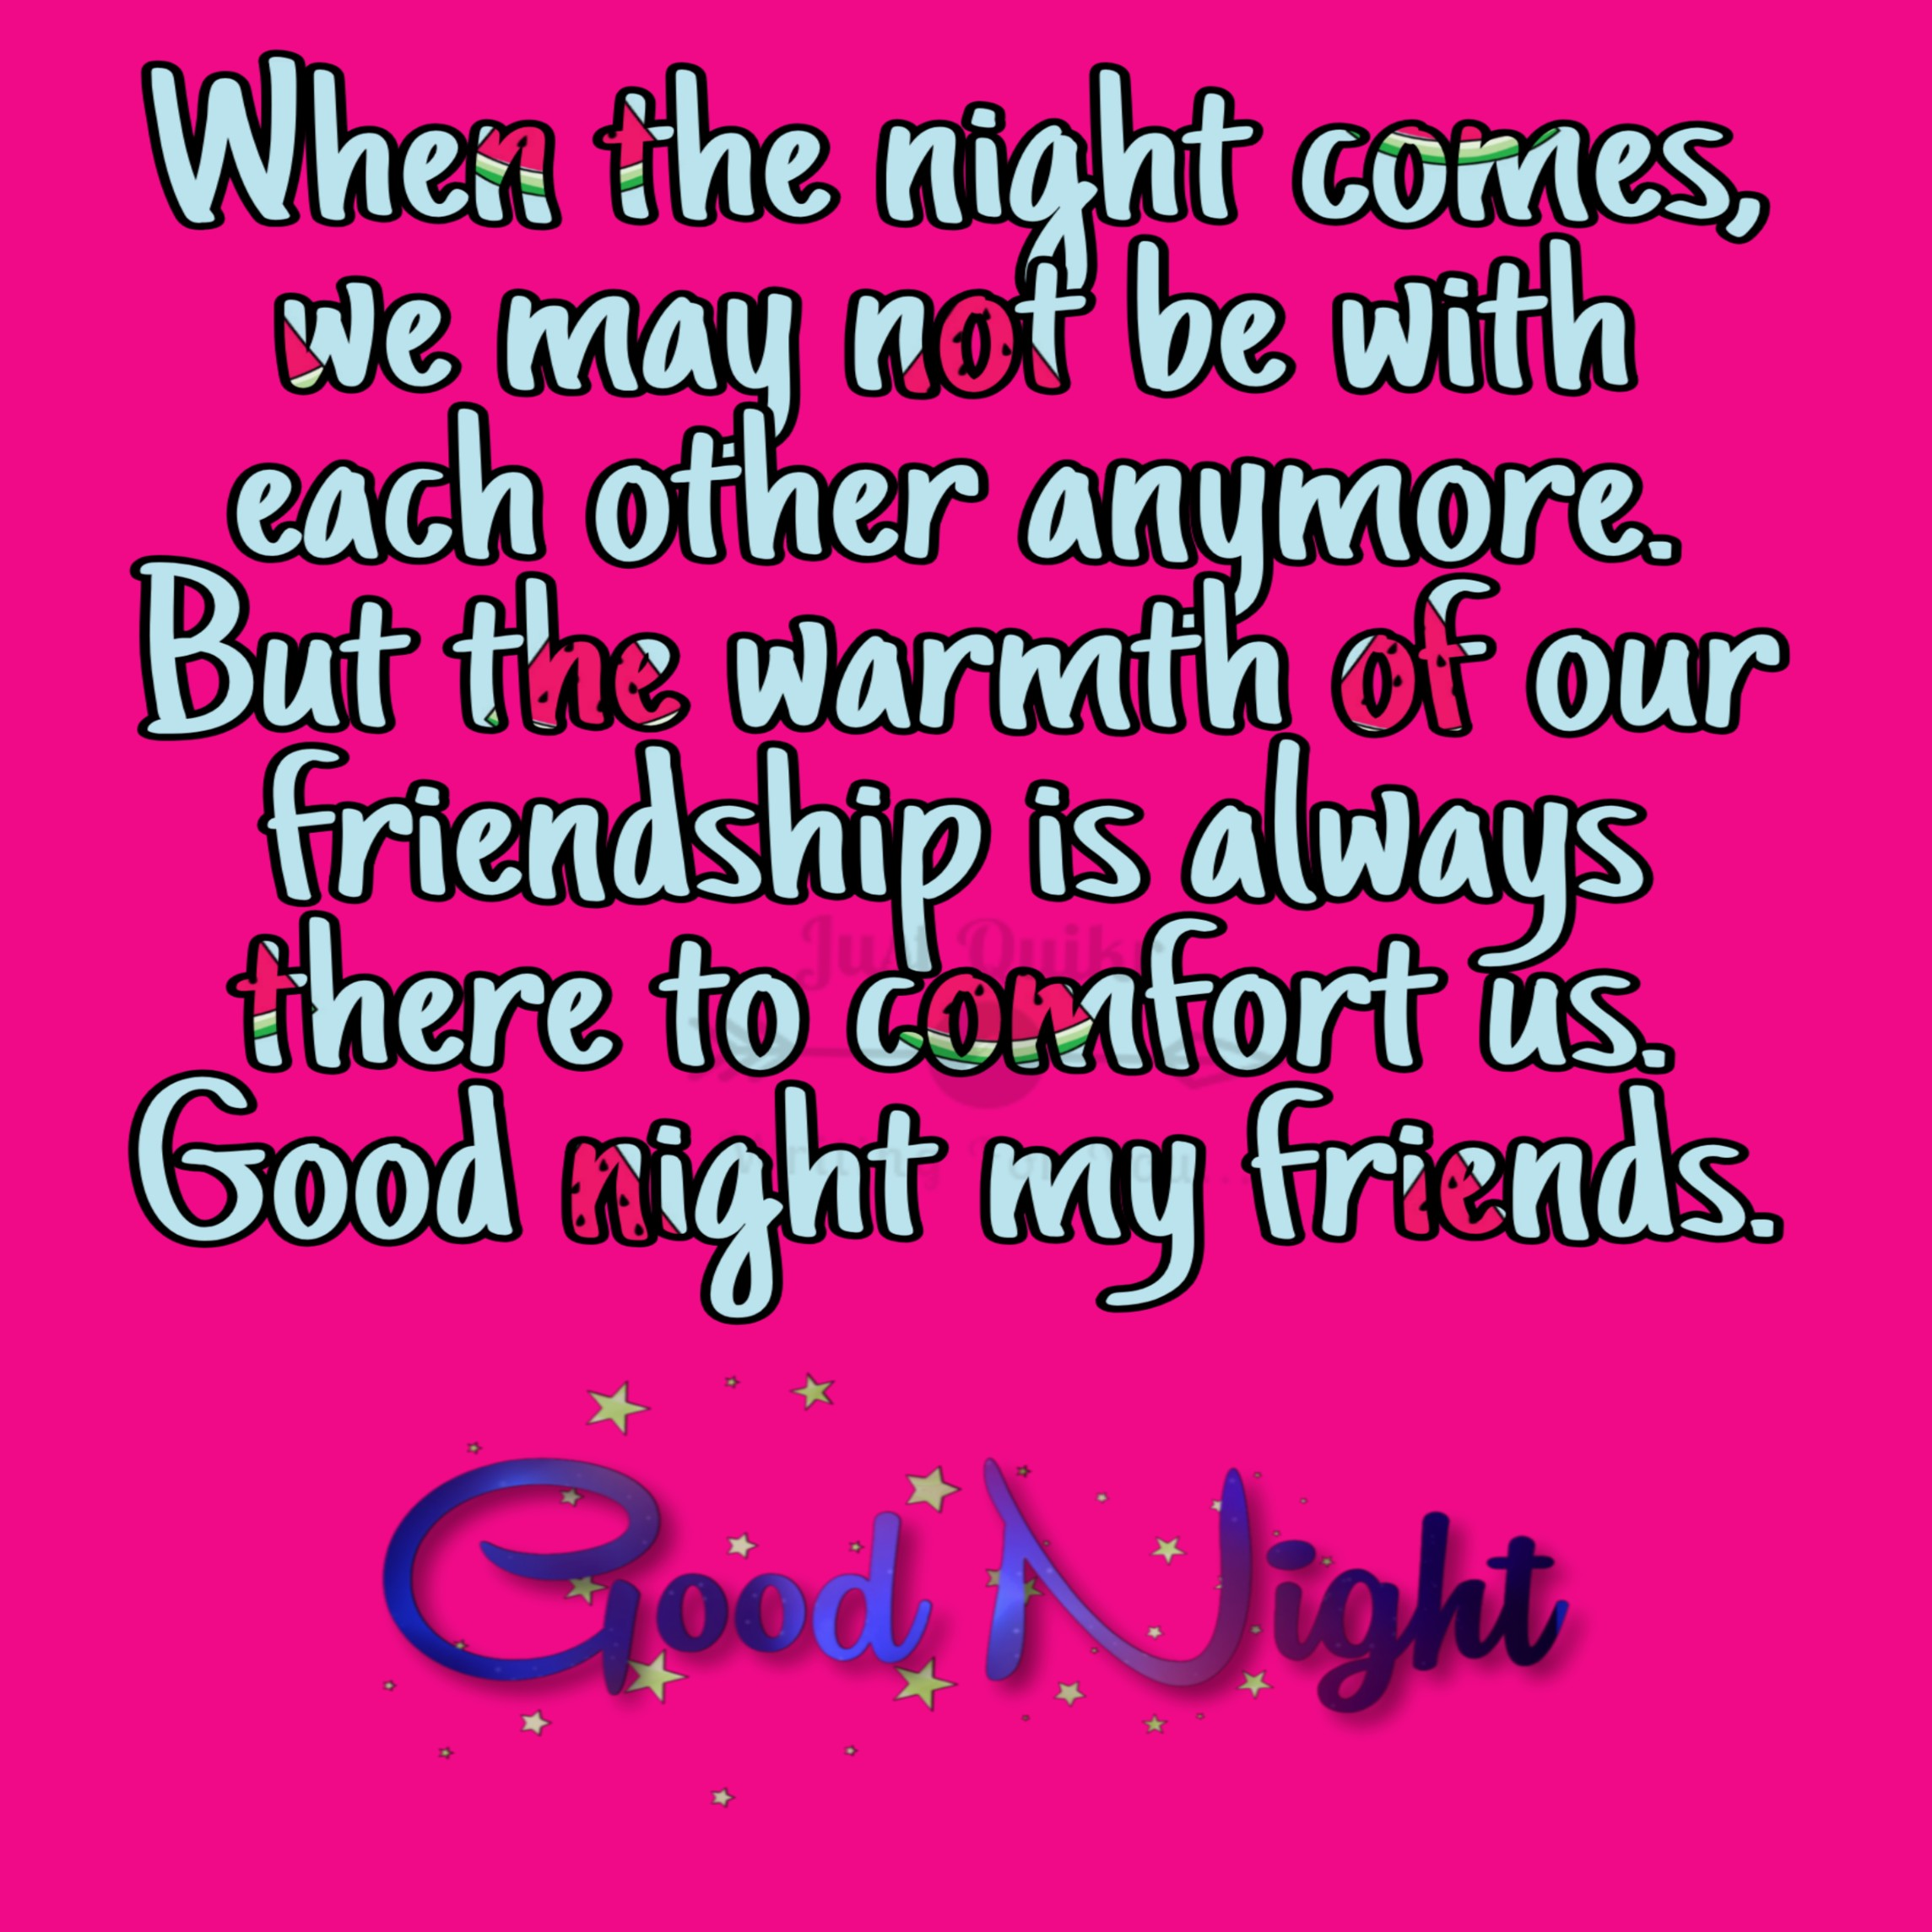 Good Night HD Pics Images For Old Friends